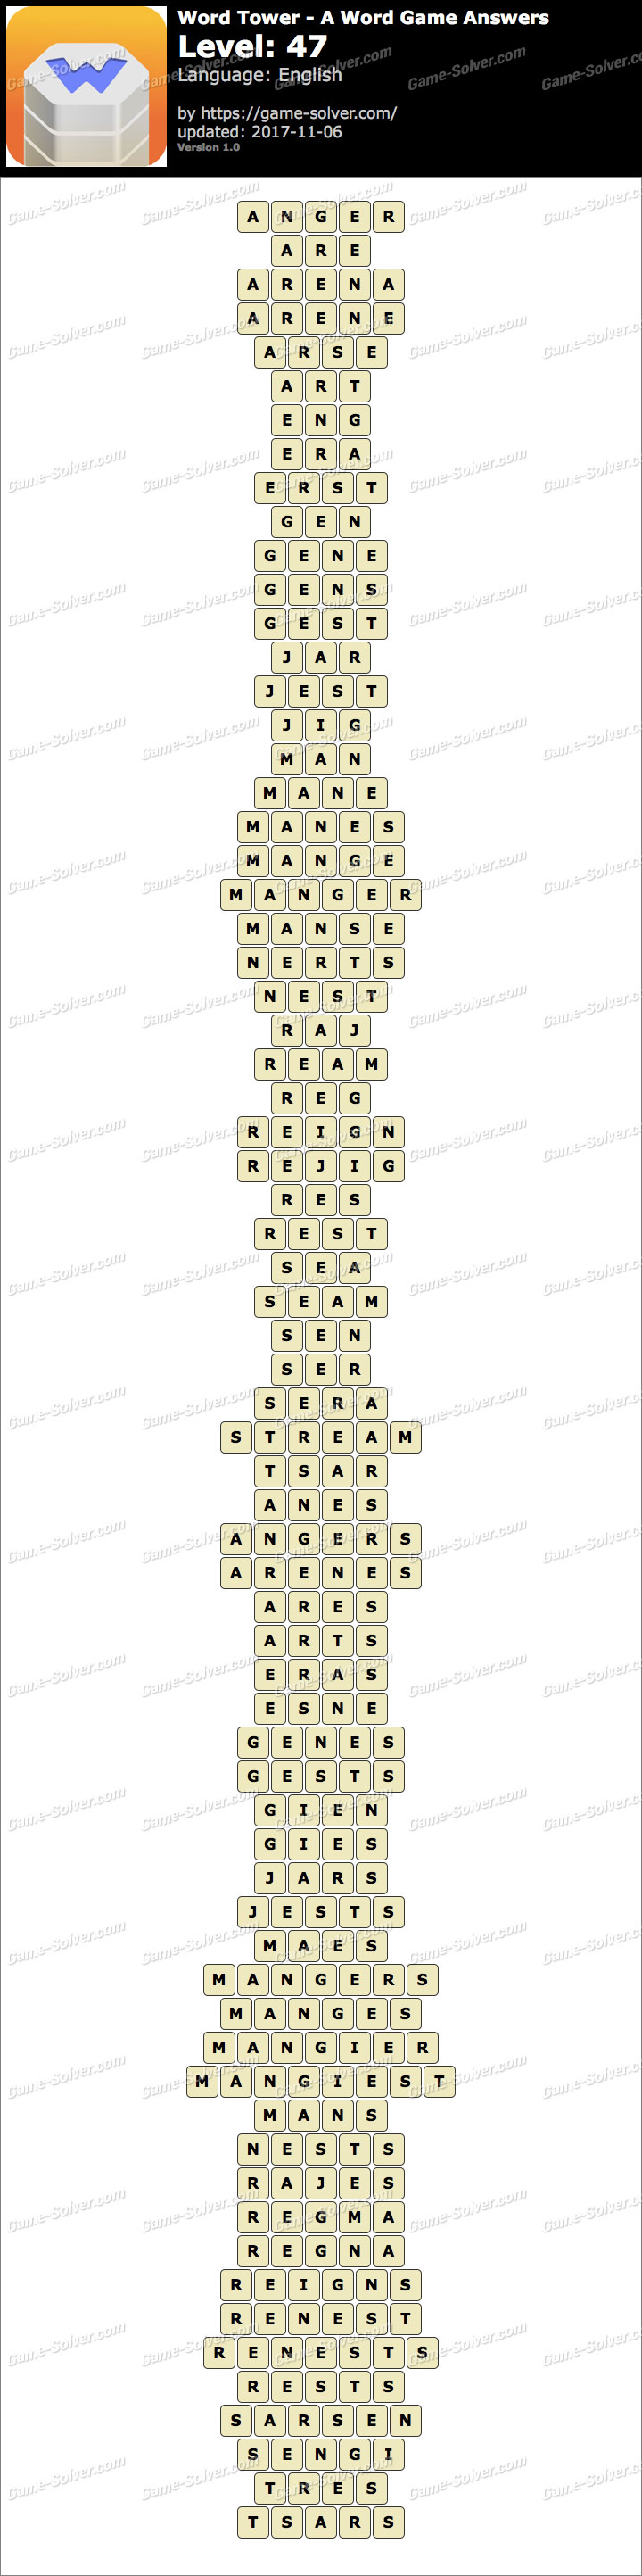 Word Tower Level 47 Answers